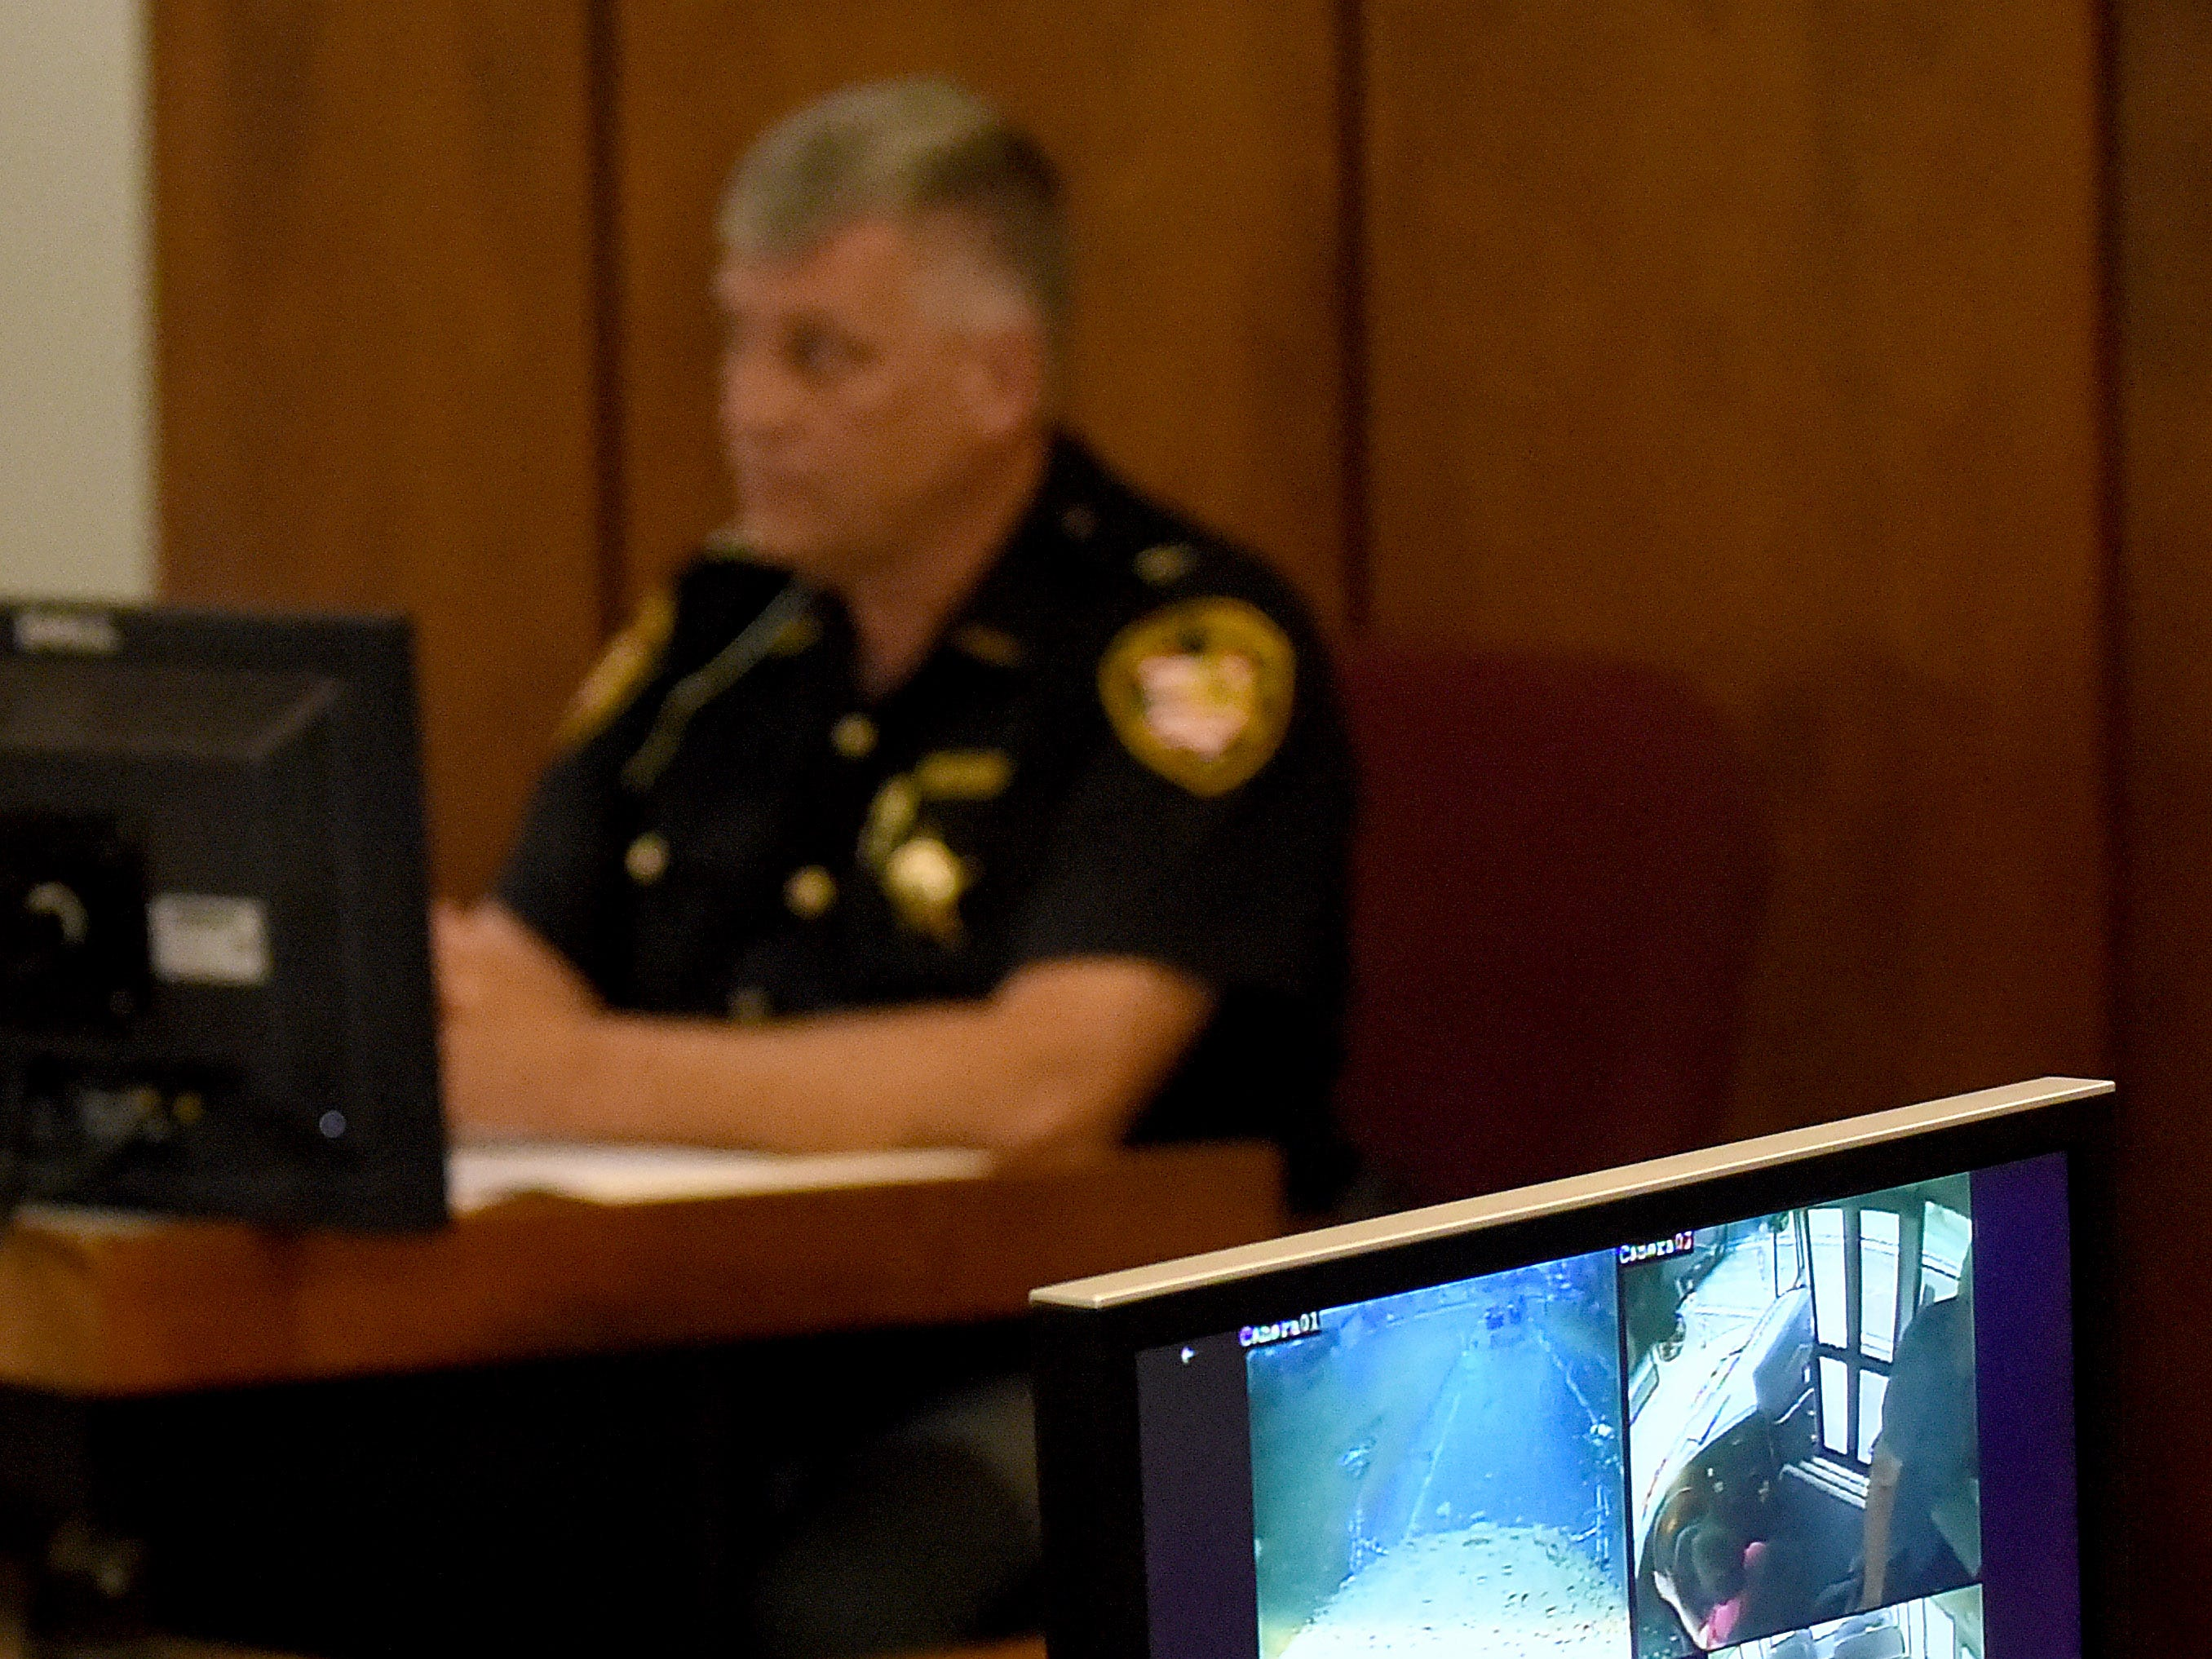 Video footage from a Newark City Schools' is displayed as Licking County SheriffÕs Office Capt. Darl Evans testifies during Newark Police Chief Barry ConnellÕs trial for a traffic citation alleging he passed a stopped school bus in October.